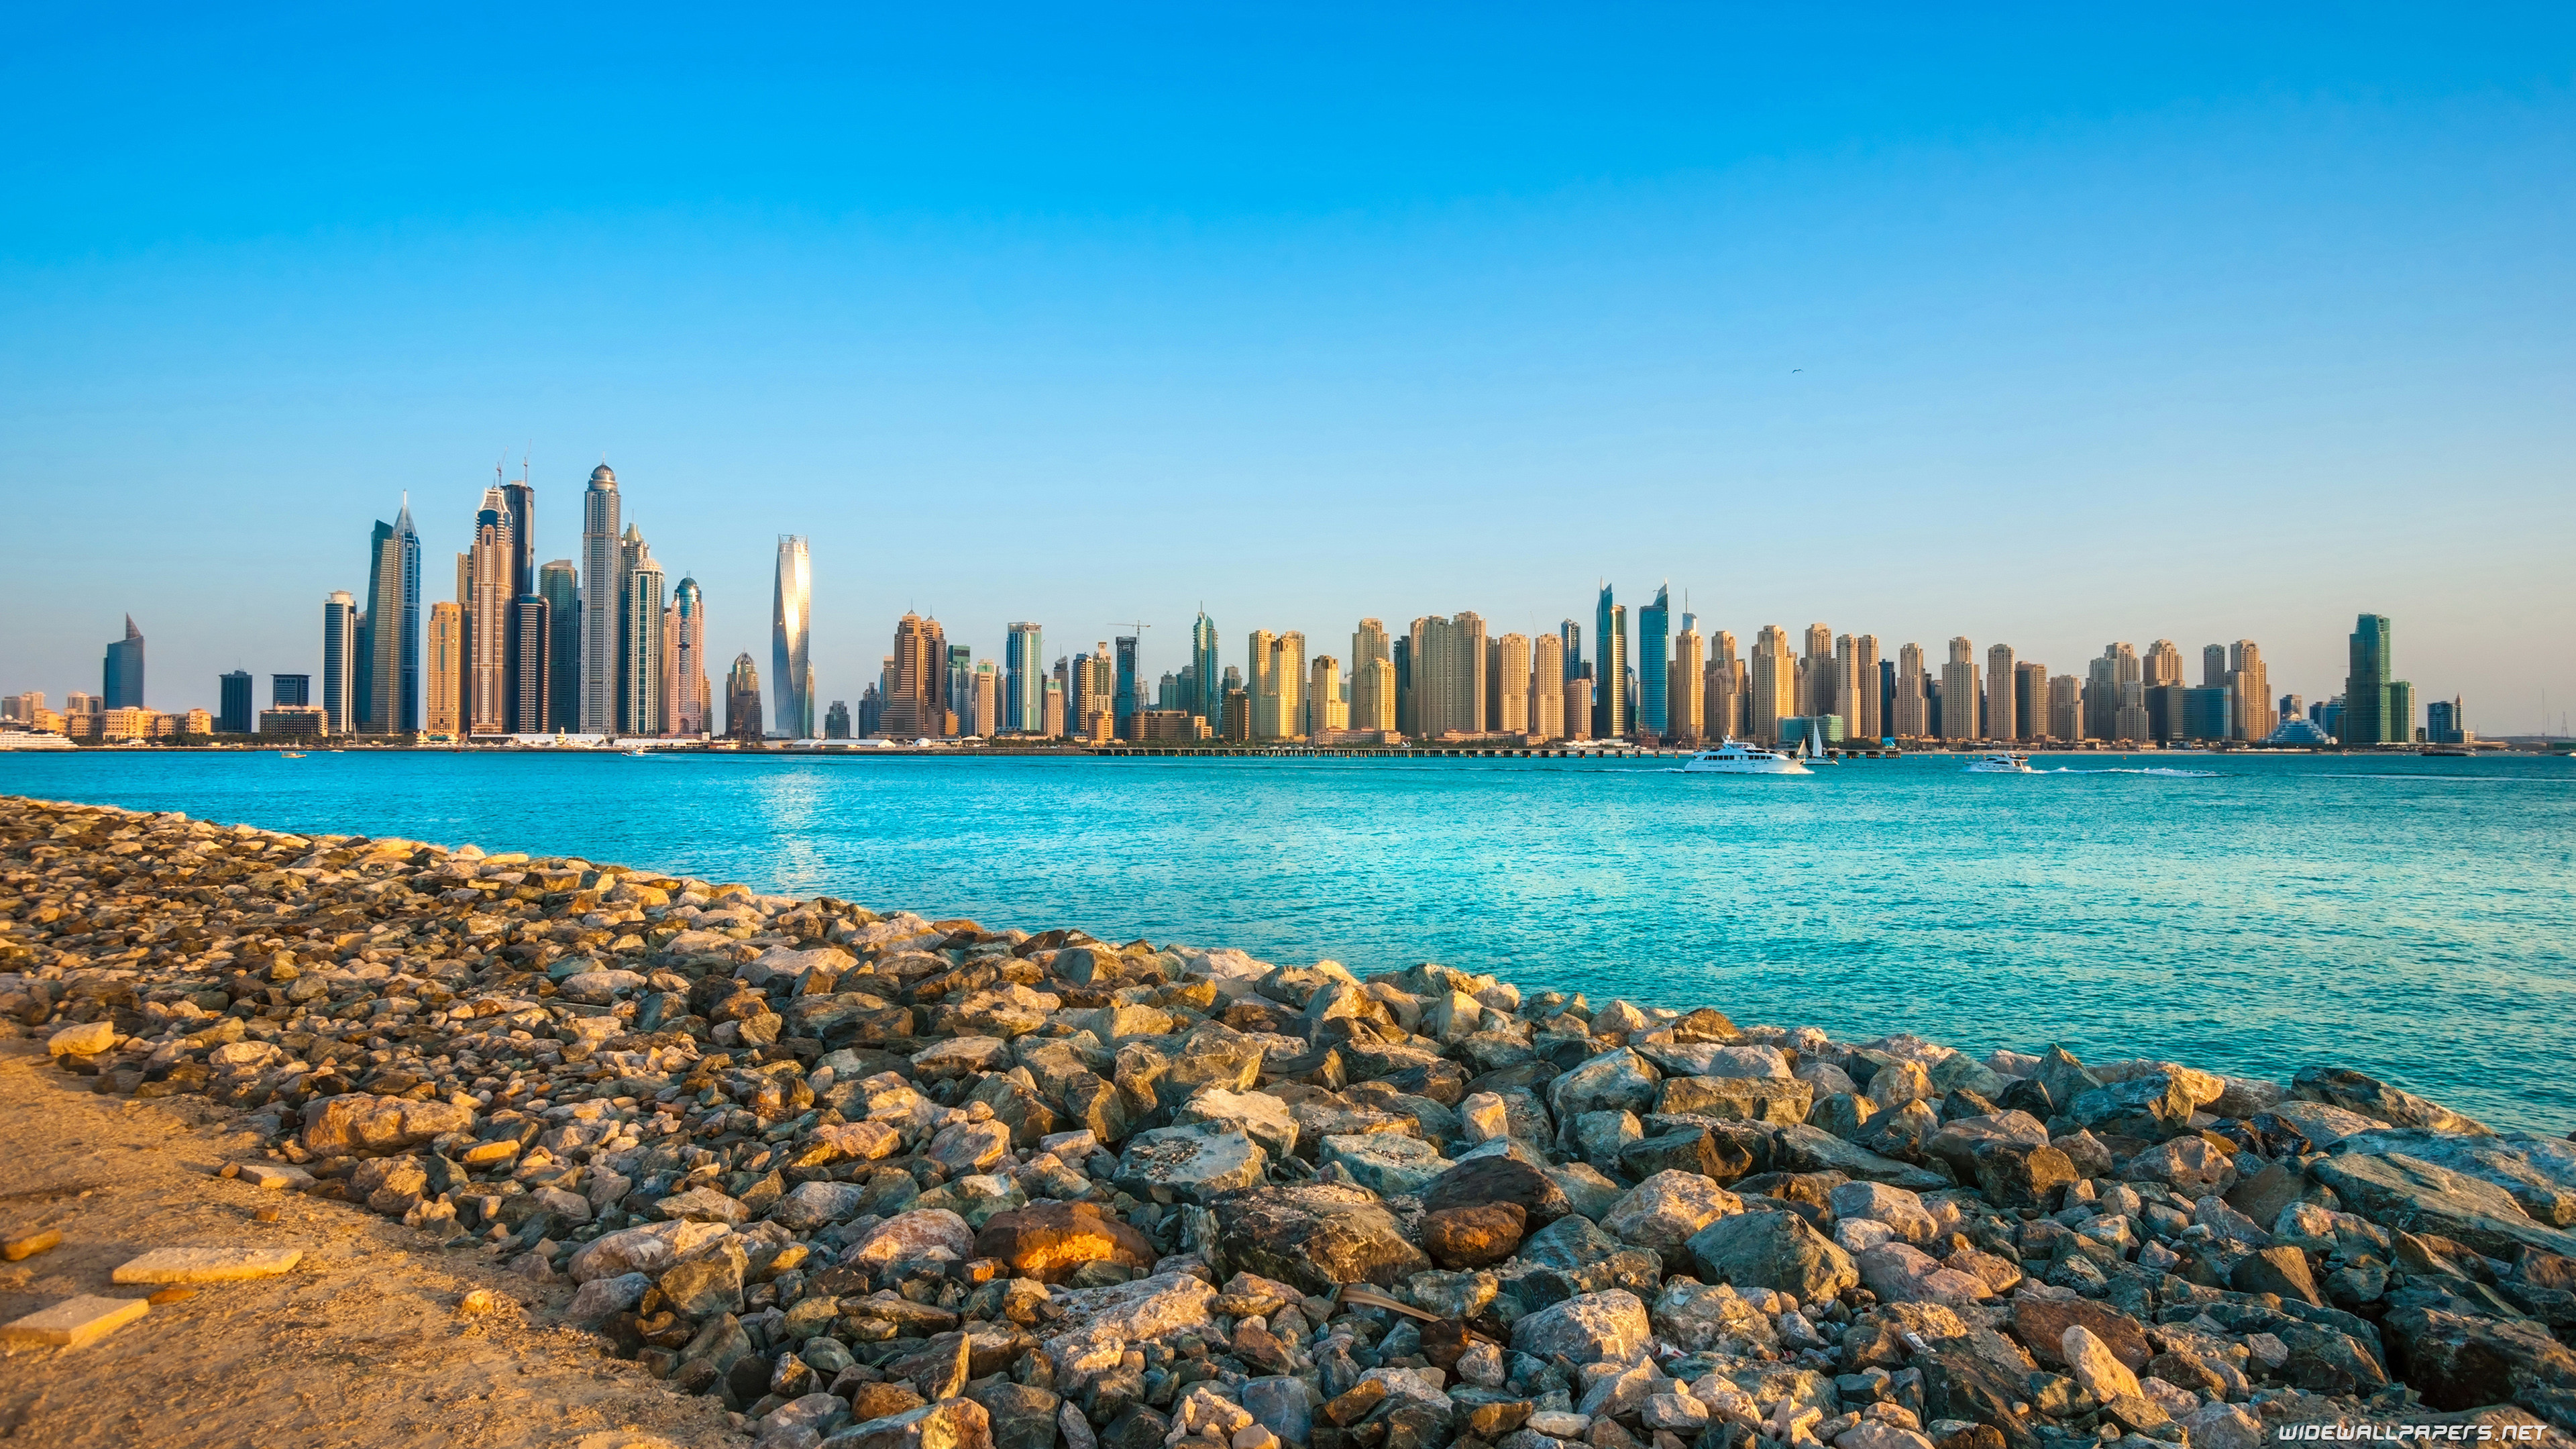 Res: 3840x2160, Dubai wallpapers 4K Ultra HD